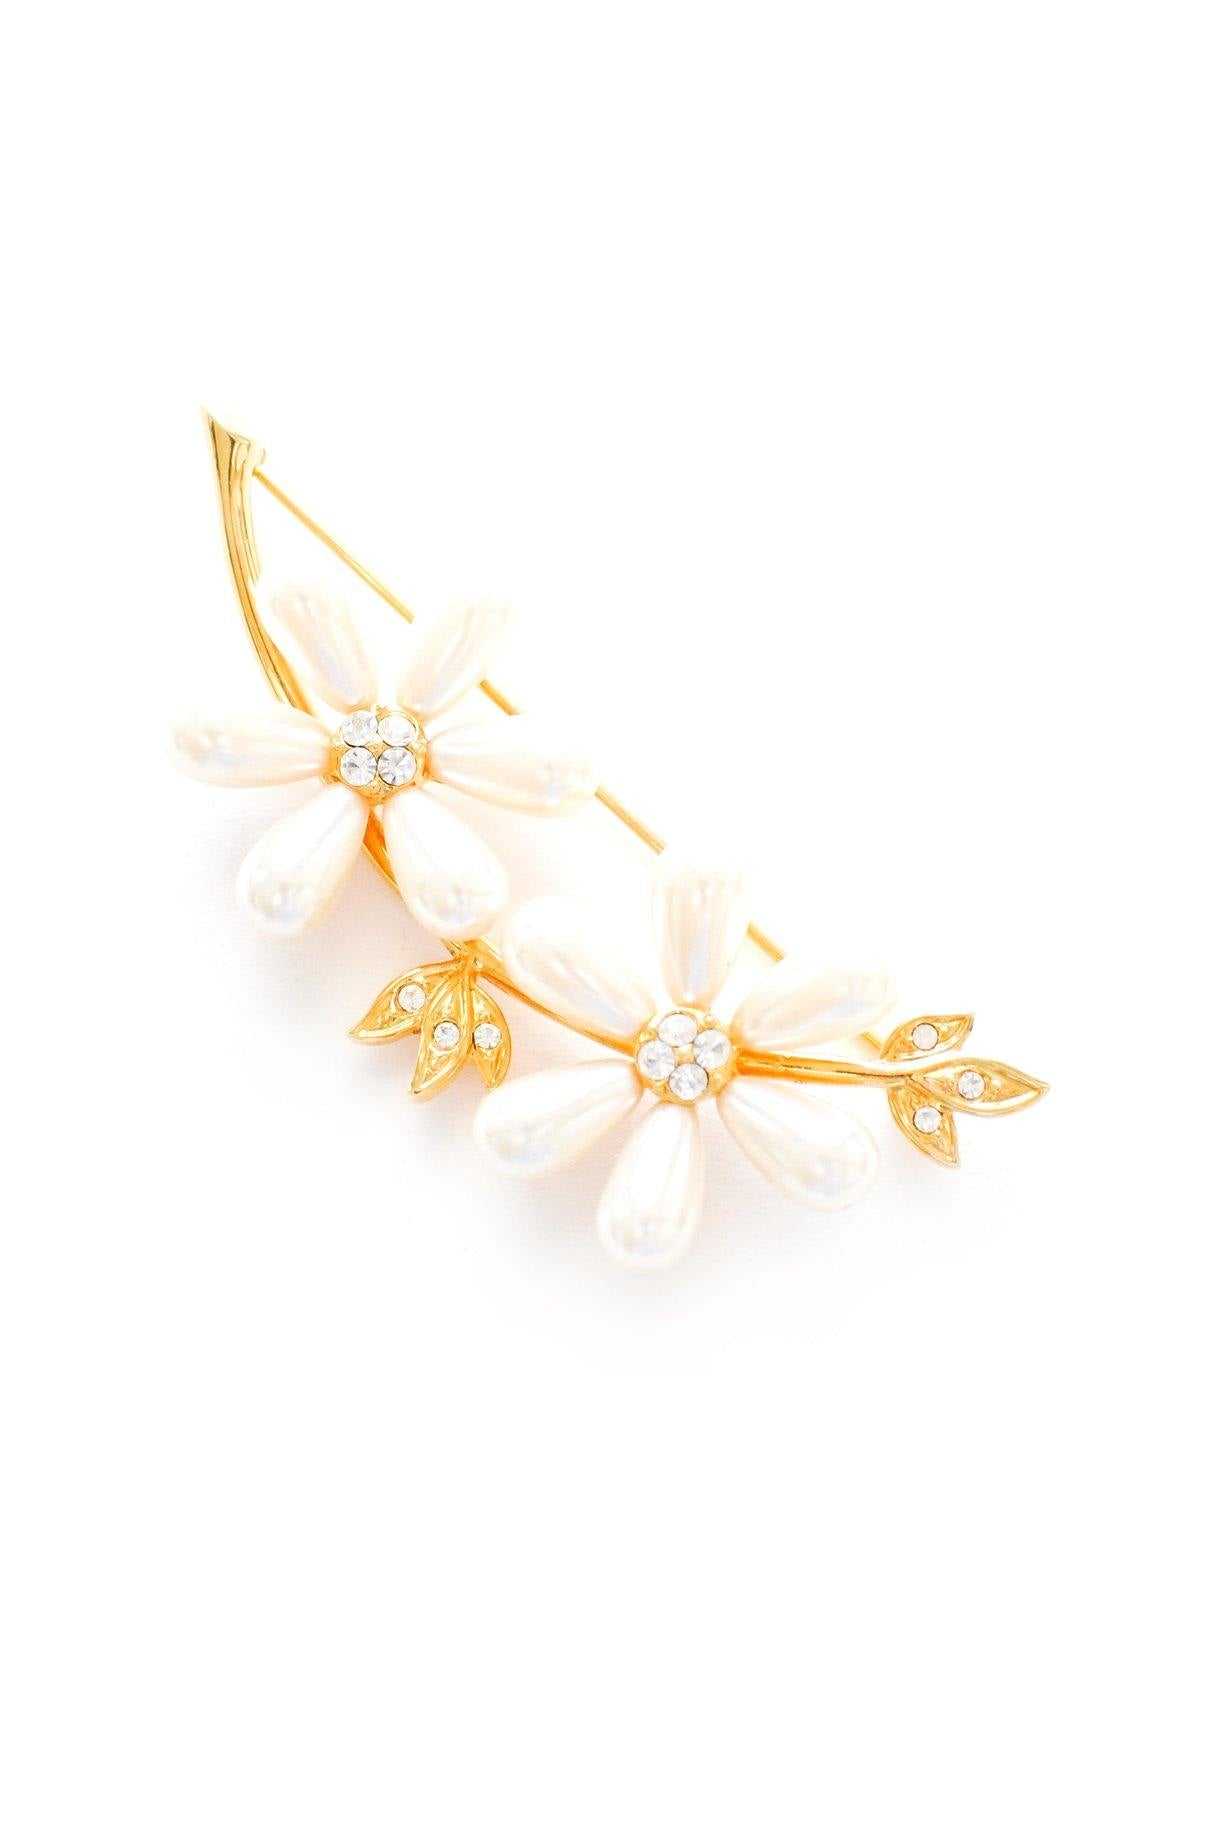 Pearl branches brooch from Sweet & Spark.